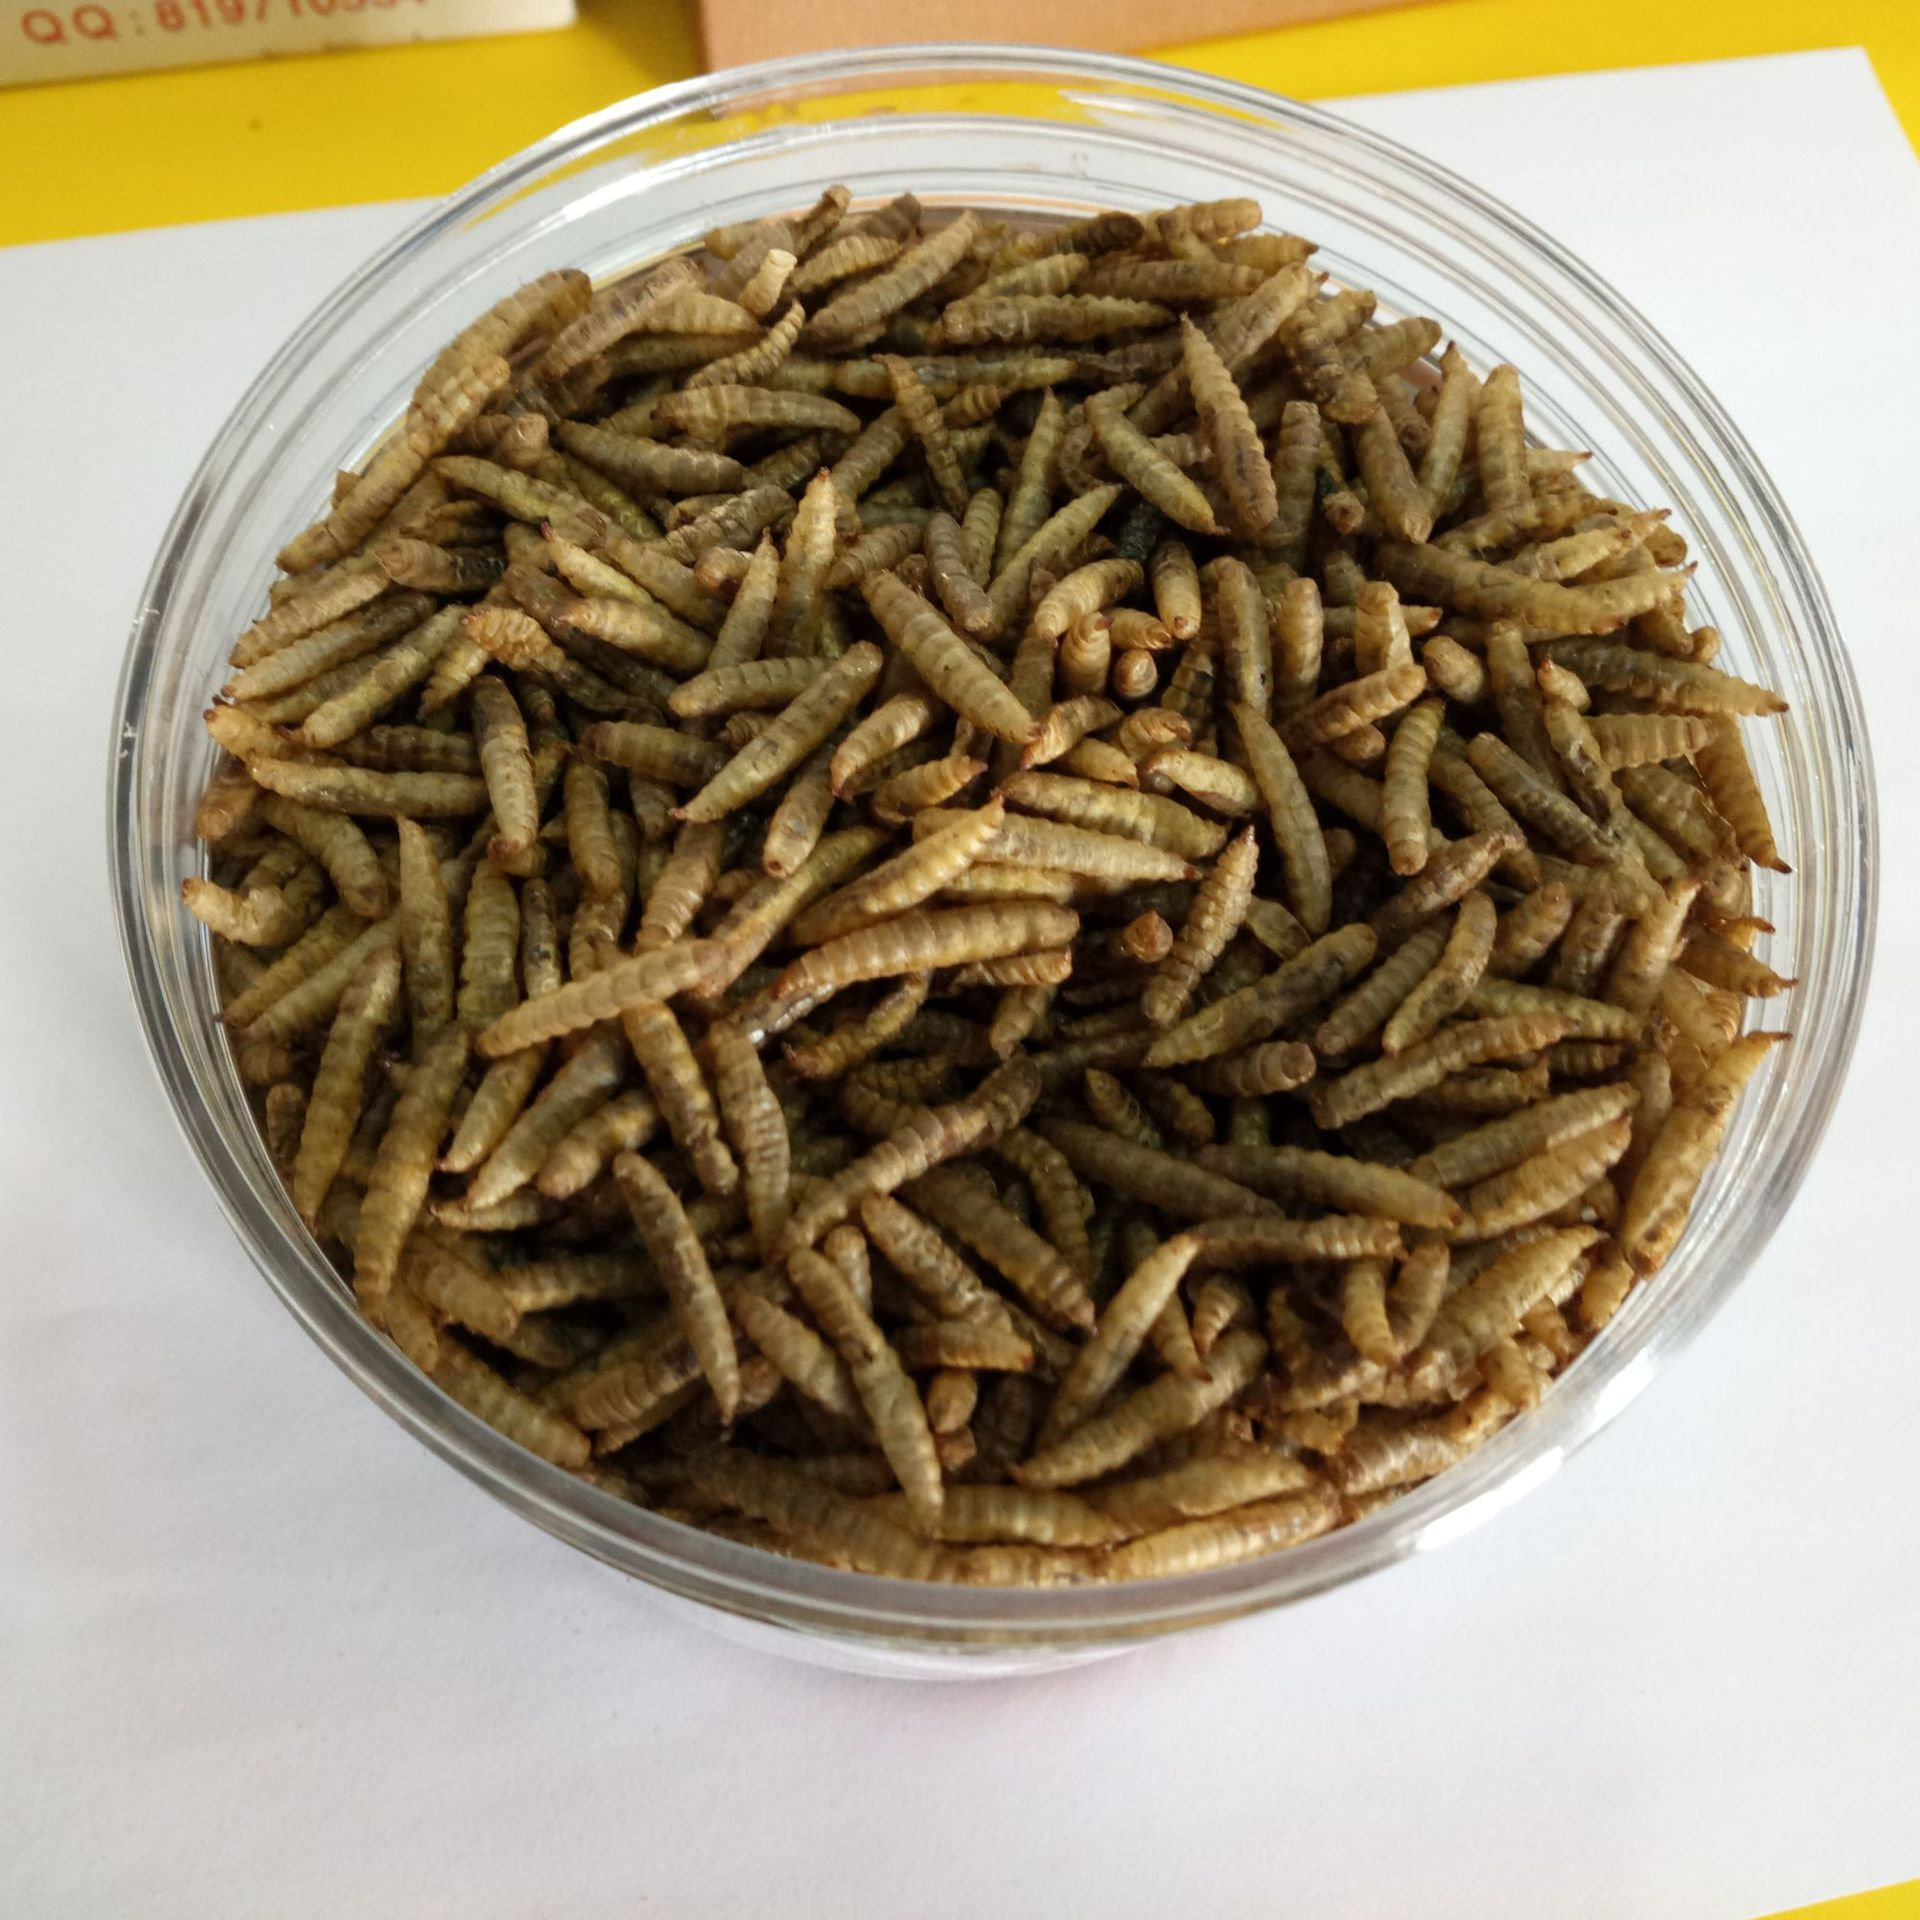 Factory price wholesale black soldier fly larvae production black soldier fly farming